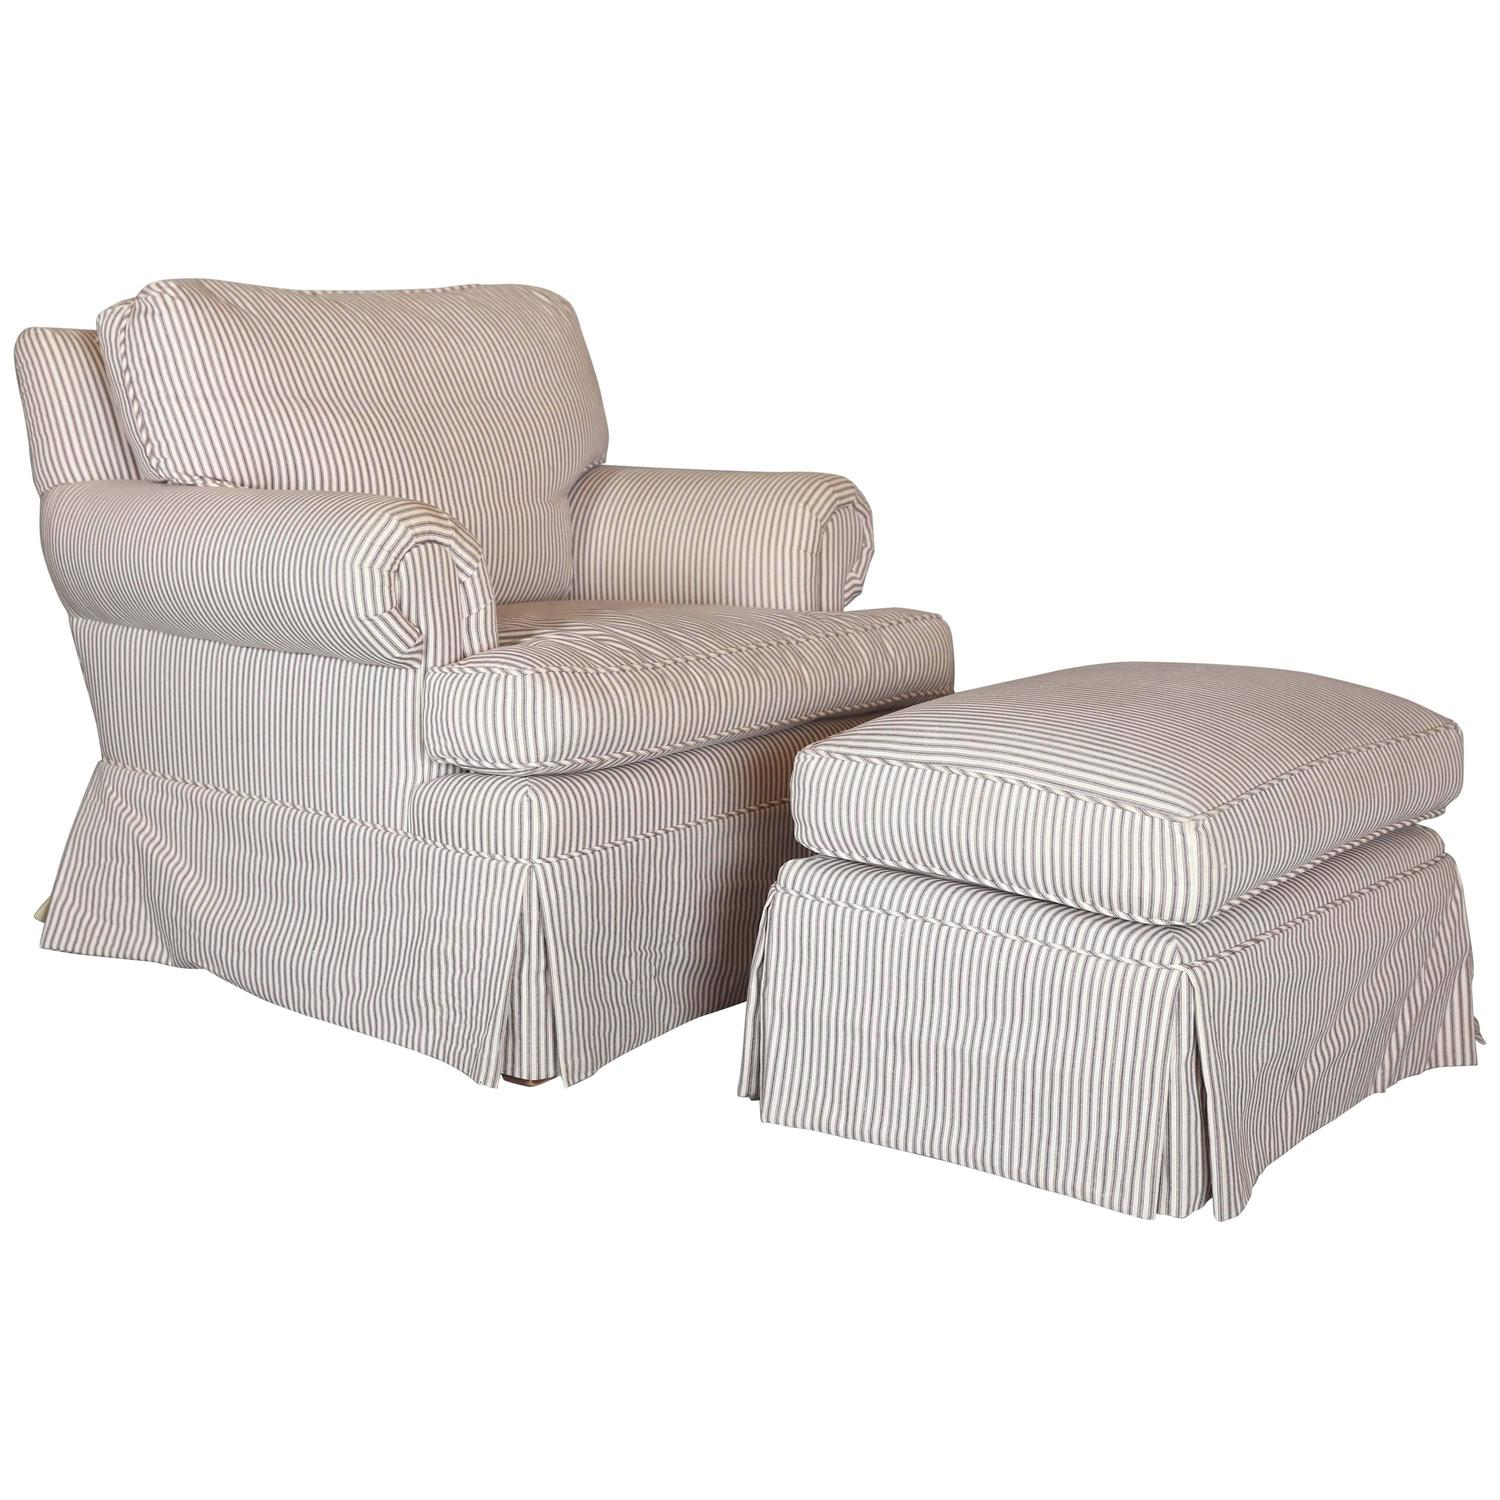 Ralph Lauren London Leather Club Chairs with Matching Ottomans